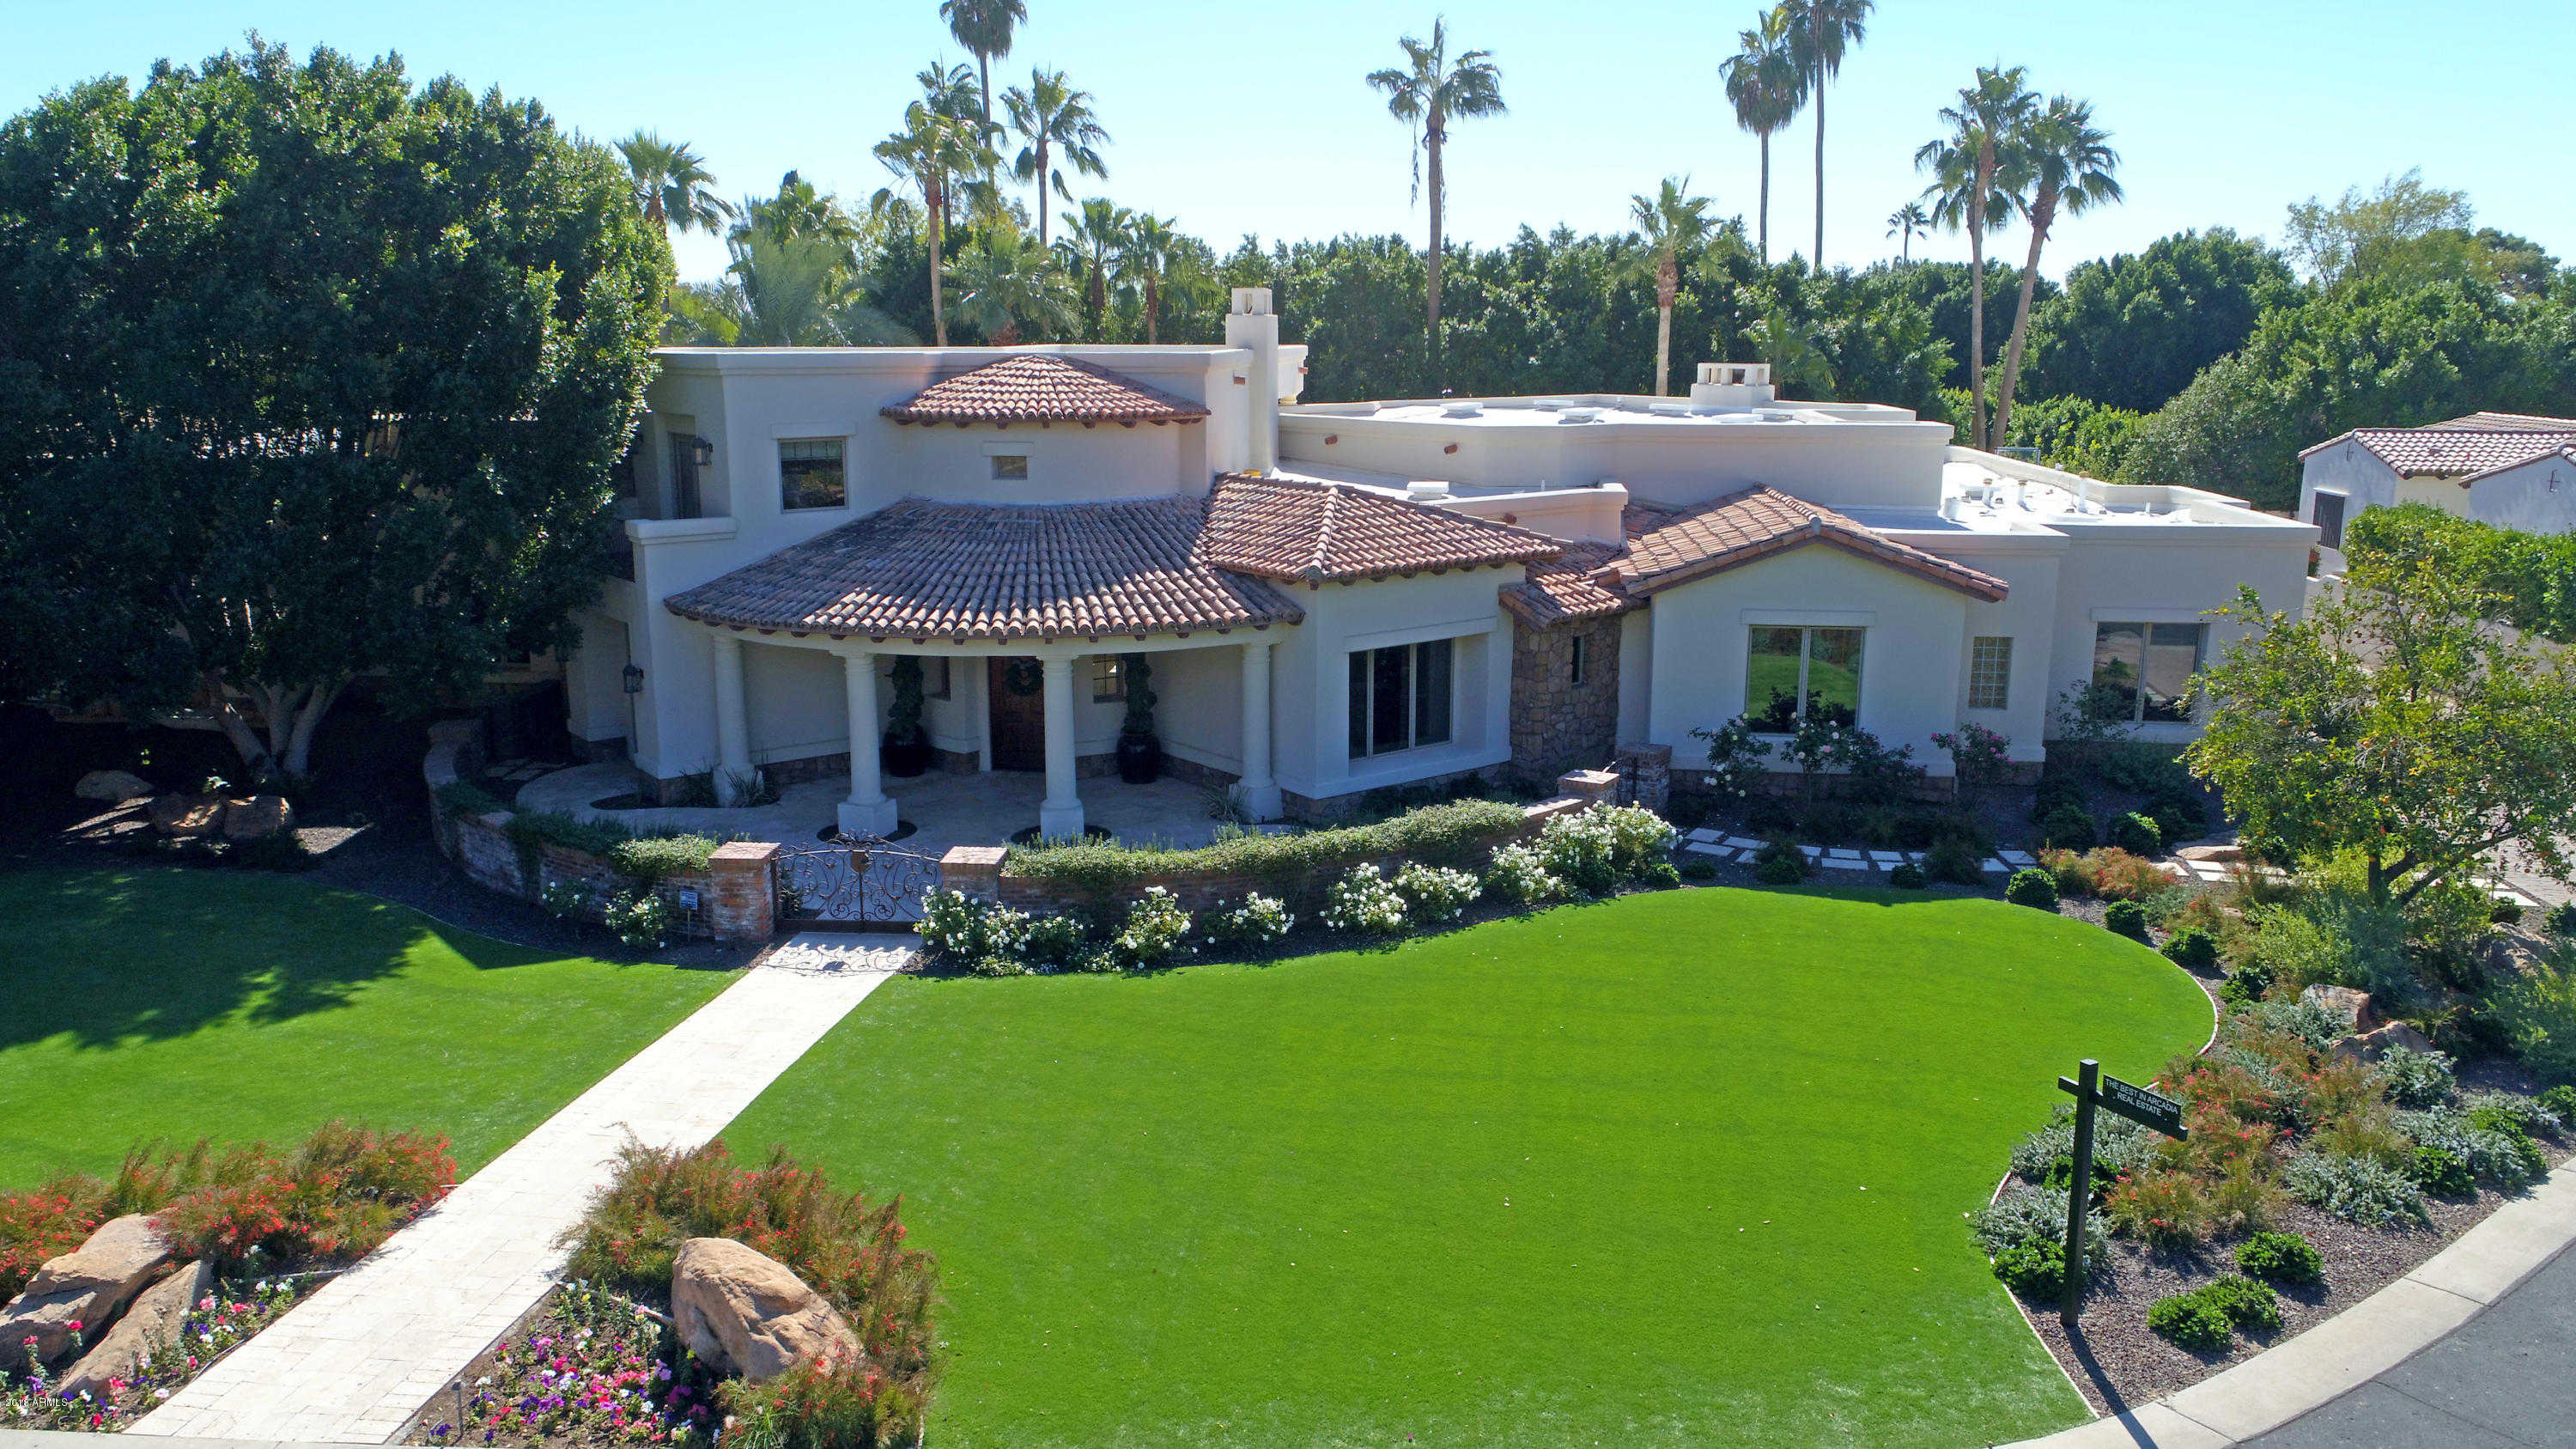 $2,995,000 - 5Br/6Ba - Home for Sale in 5500 Camelback, Phoenix